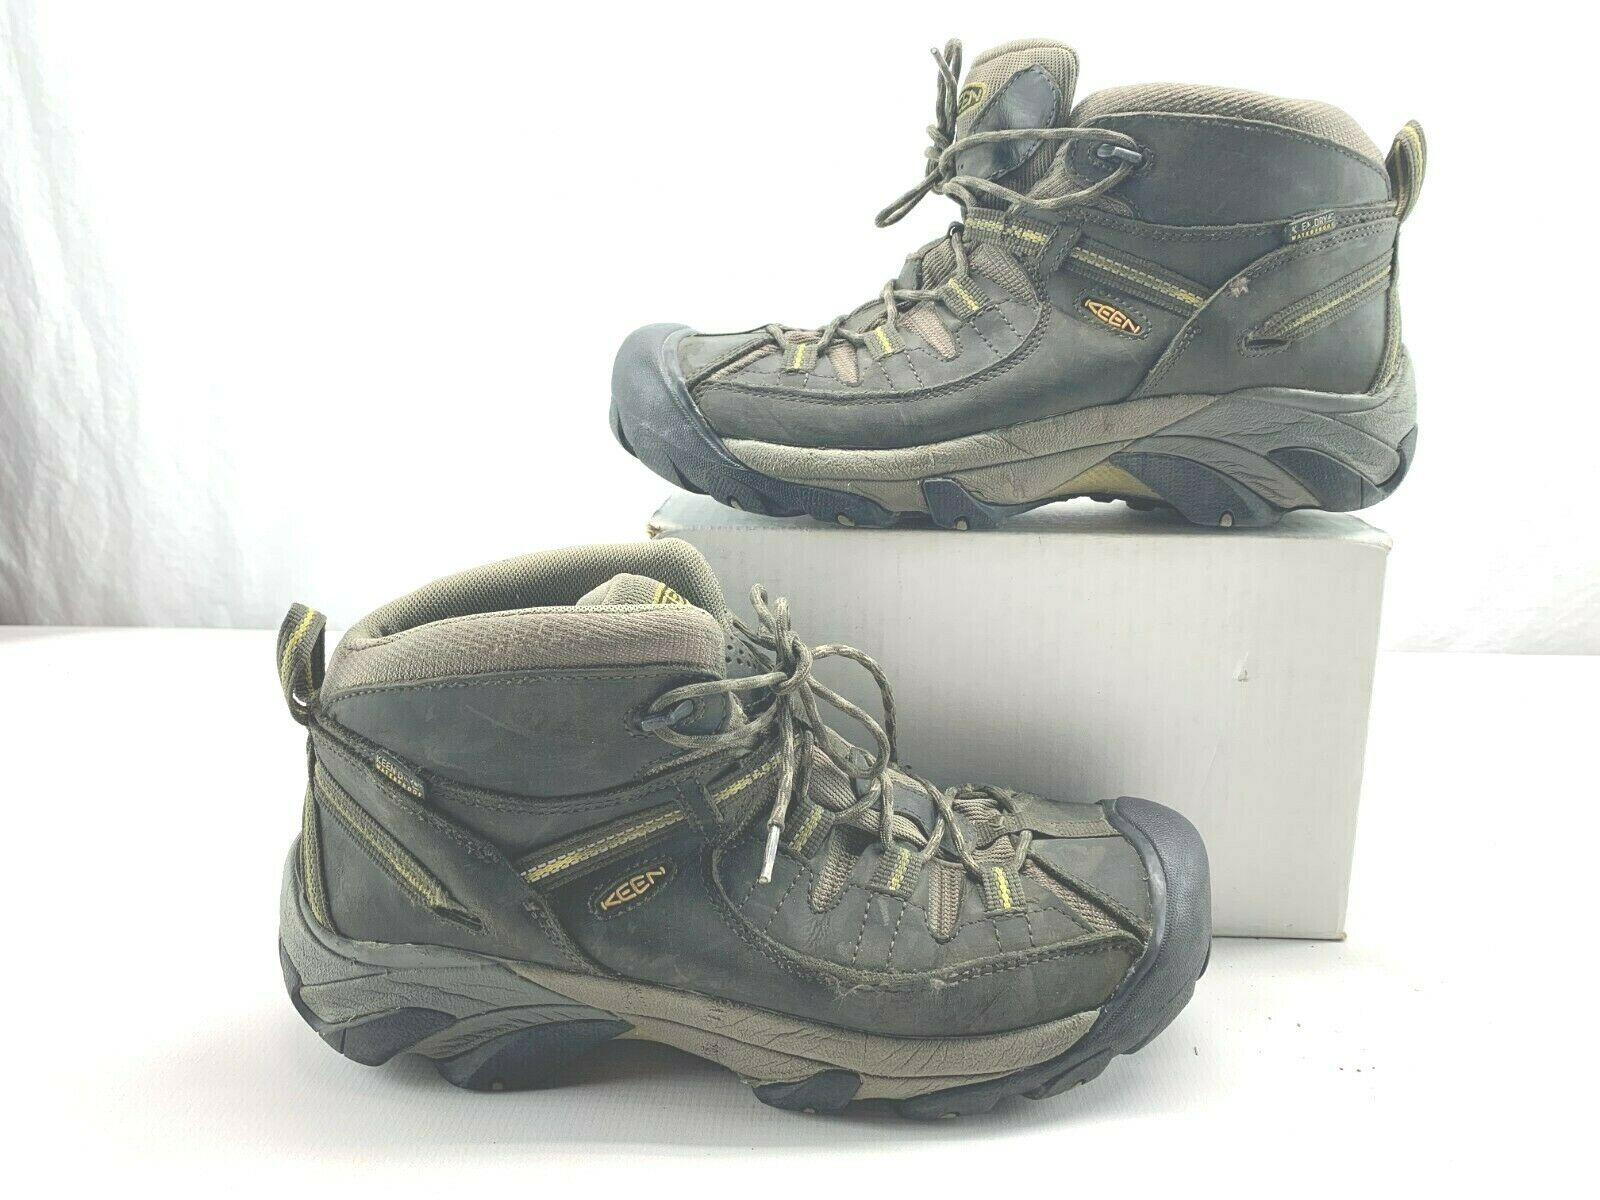 KEEN Men's Targhee II Mid Wide WP Hiking Boots 1013124 Black Olive SIZE 12